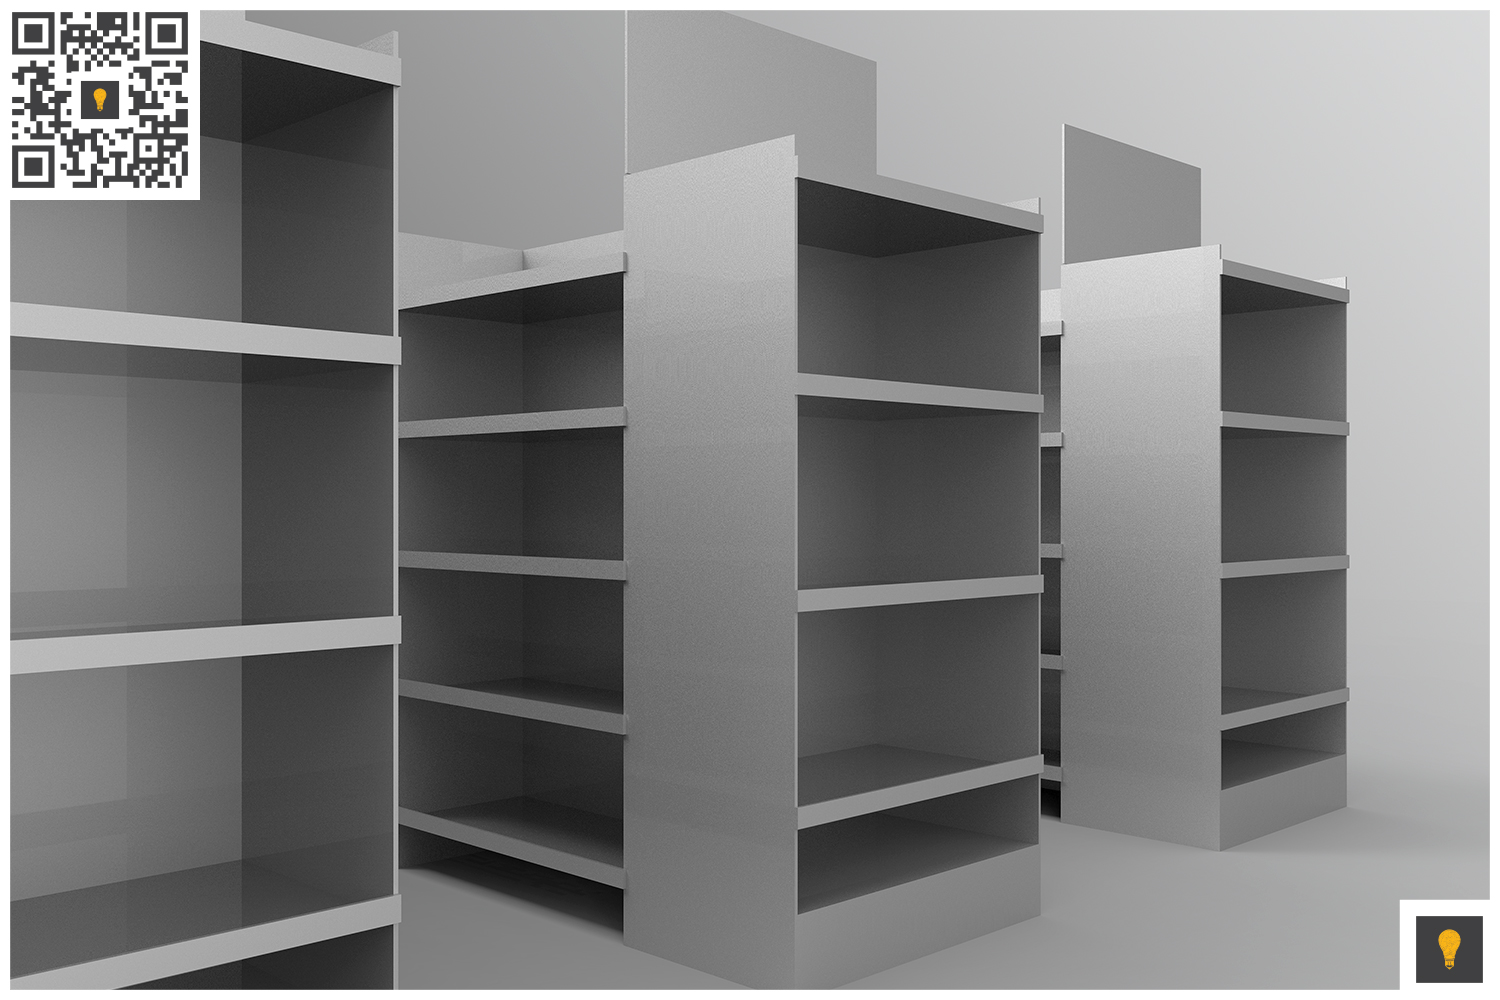 Aisle with Gondola Store 3D Render example image 9